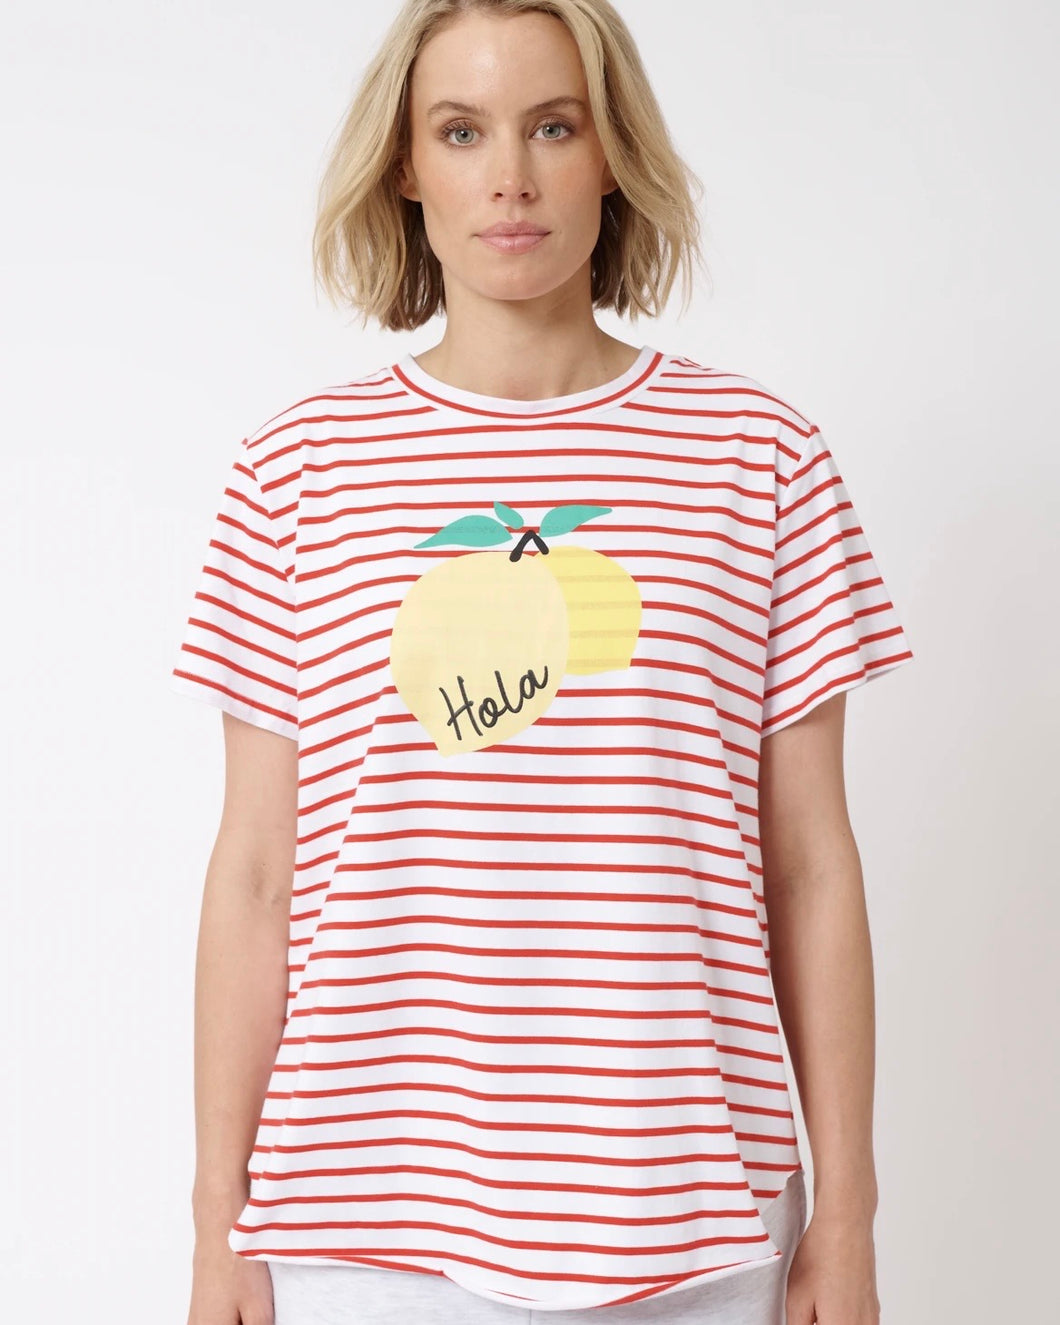 Hola Lemon Tee in White/Red by Alessandra